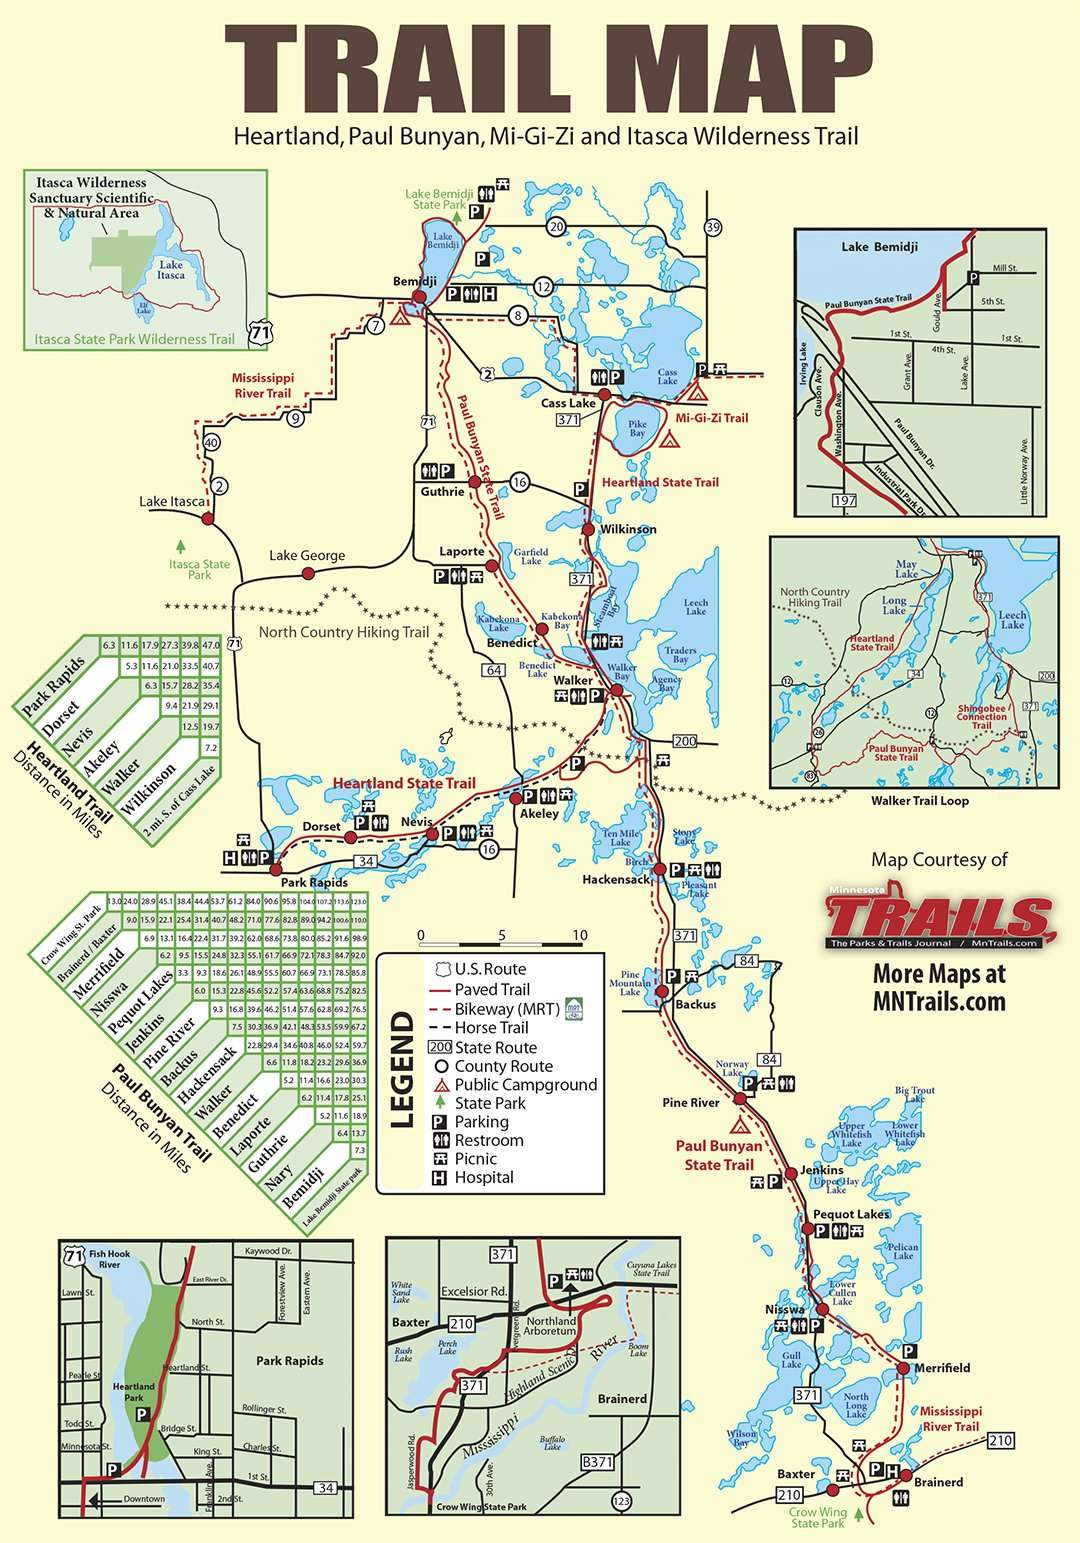 Paul Bunyan/Heartland State Trail map